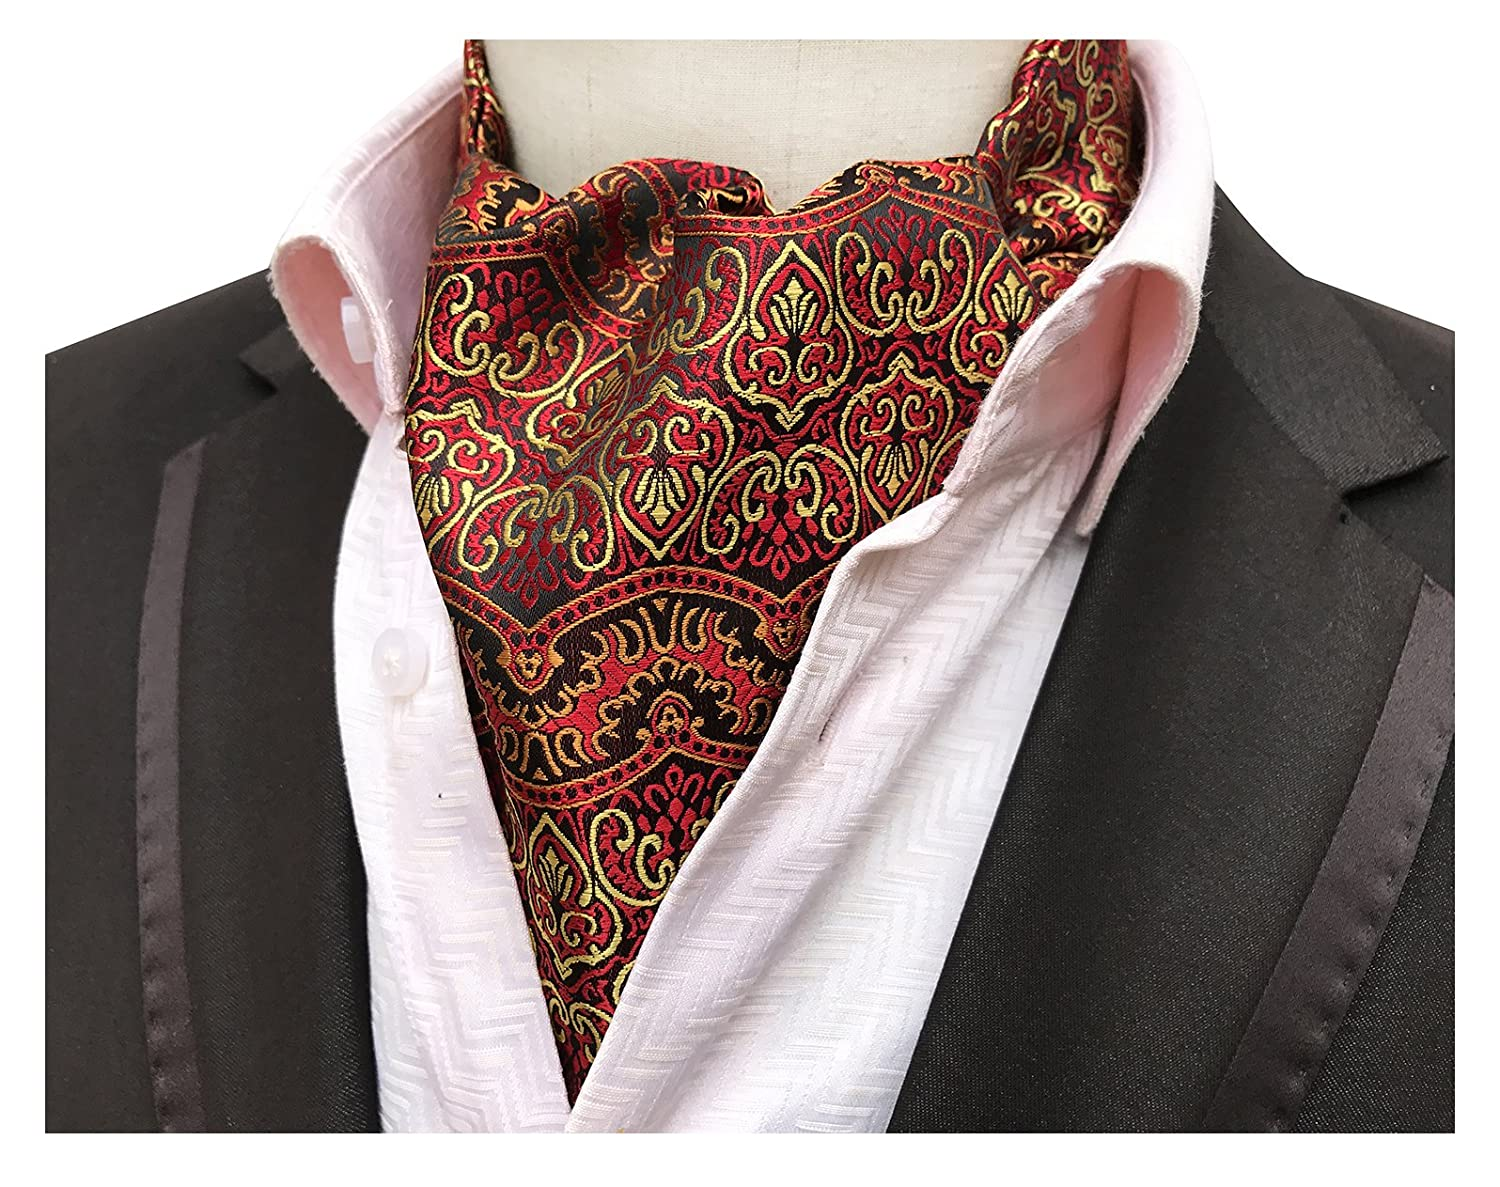 Elfeves Men's Graphic Business Ascot Cravat Jacquard Woven Ties for Husband Aug17A2017-8-12-23